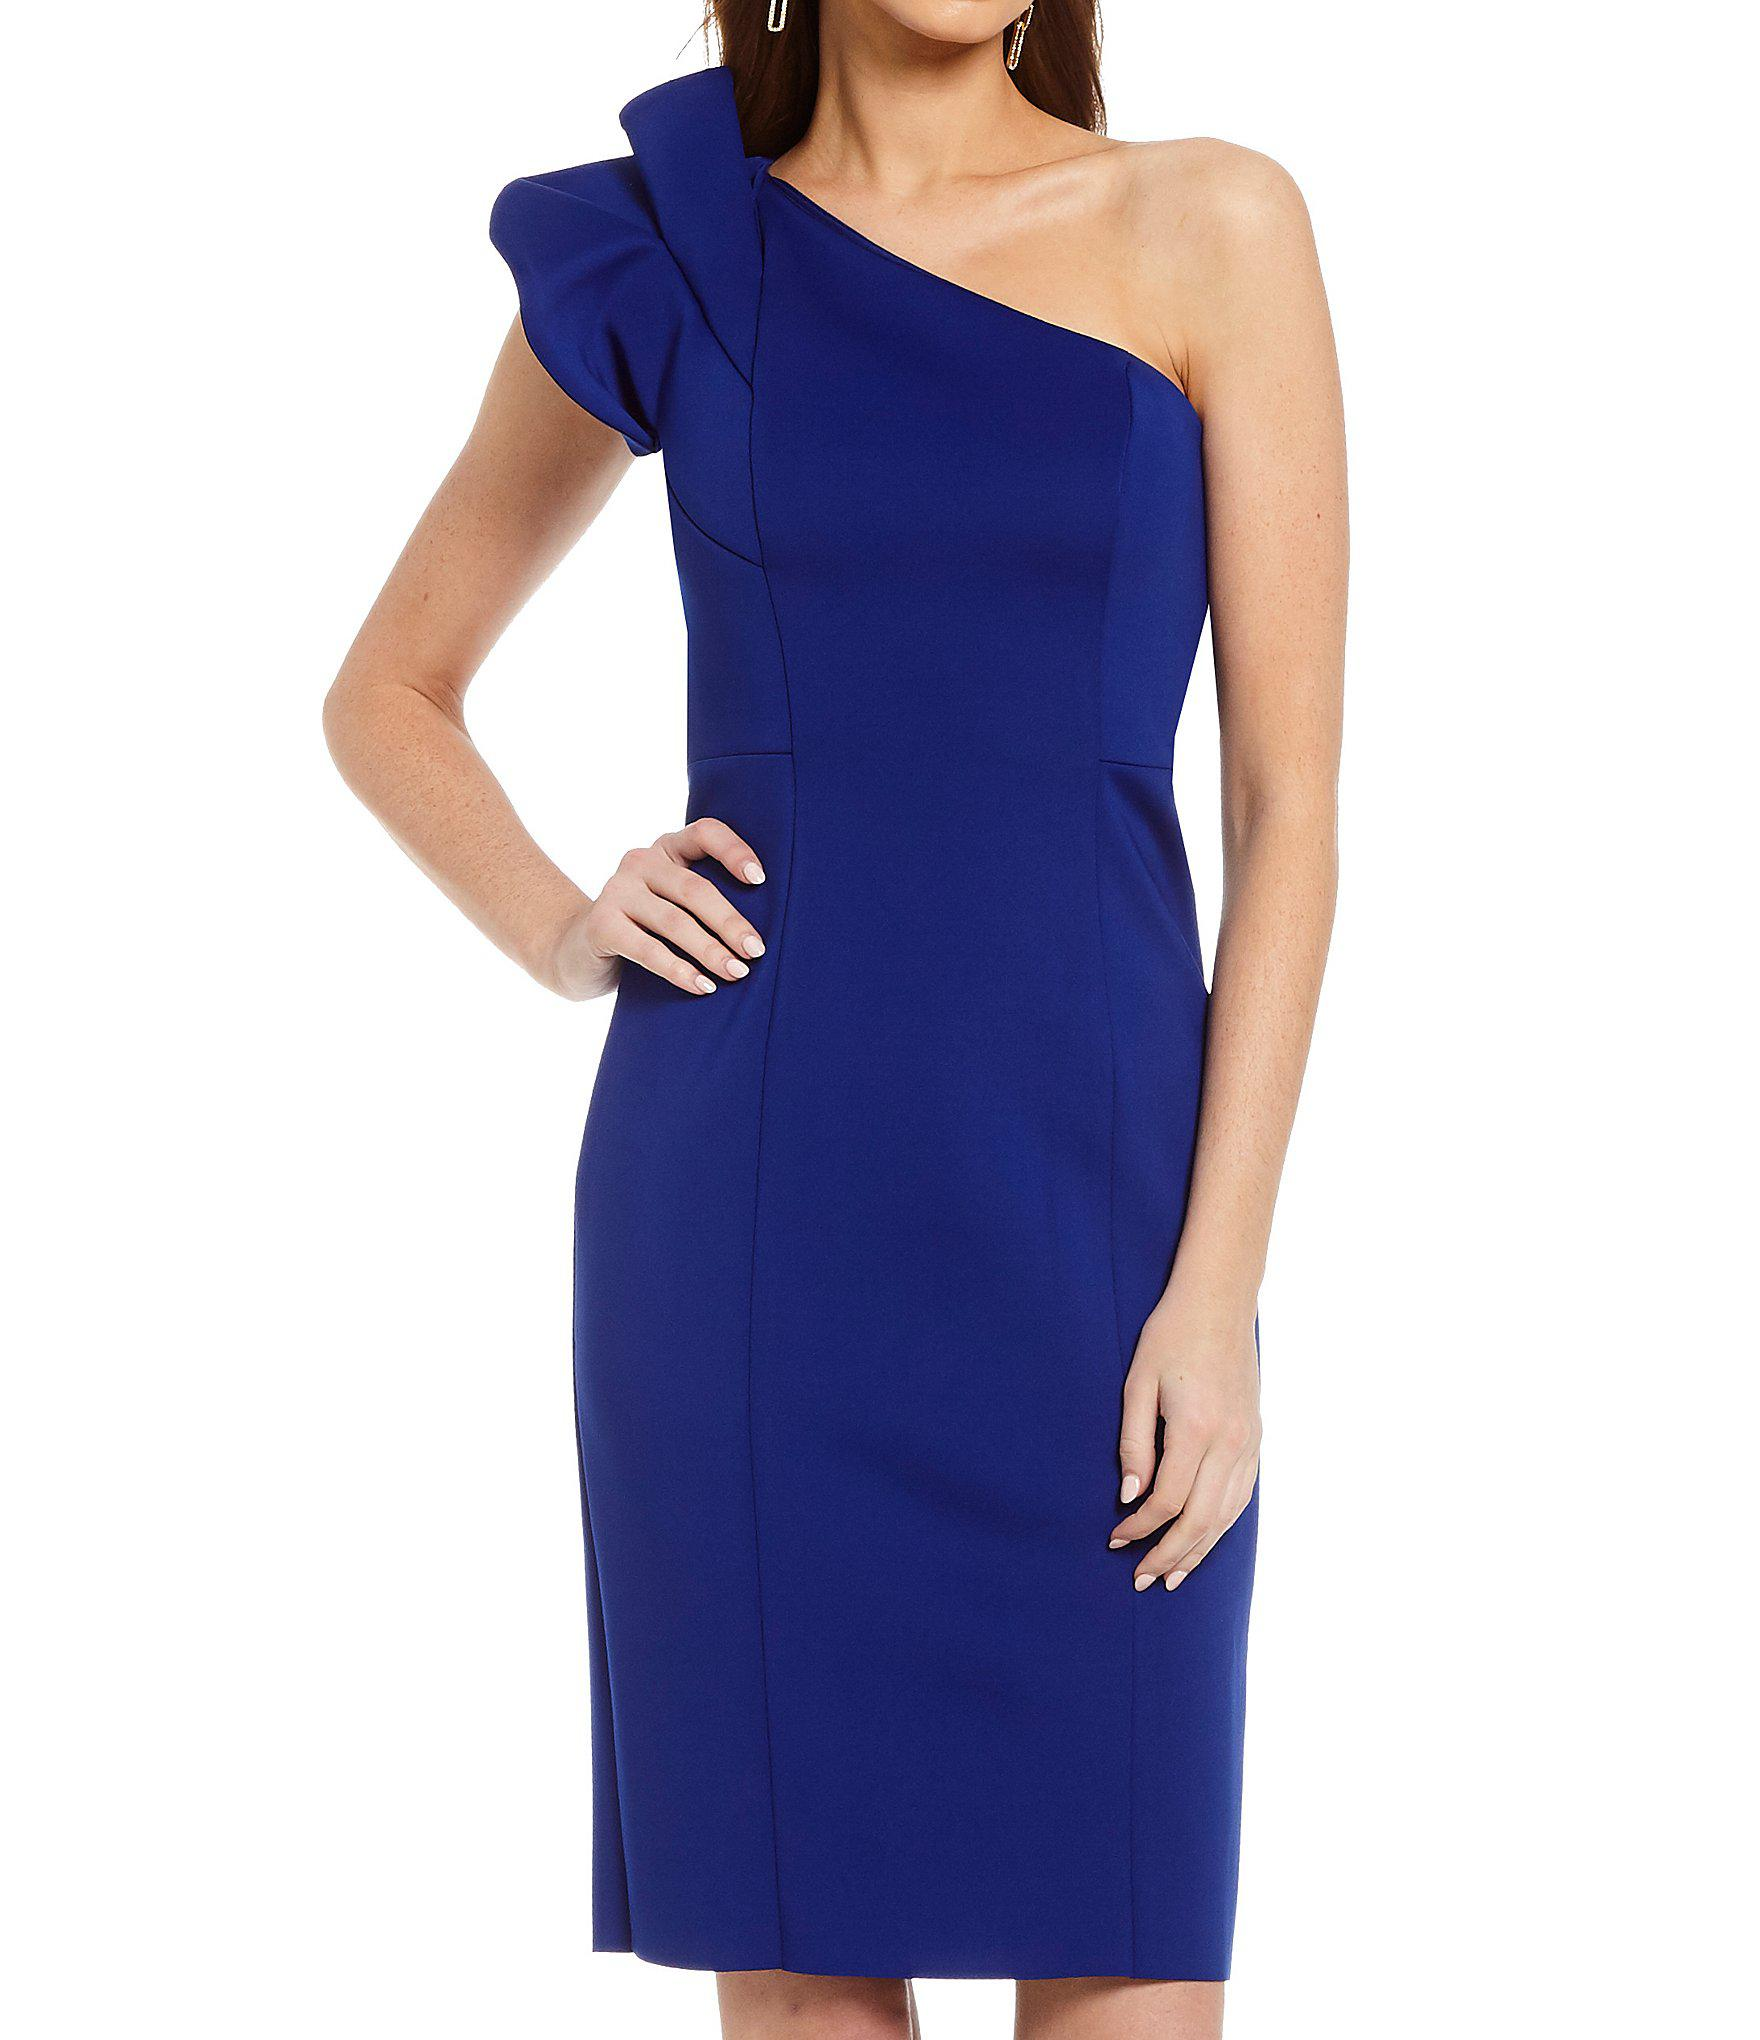 3ab7eb70a2c Lyst - Vince Camuto One Shoulder Drama Sleeve Dress in Blue